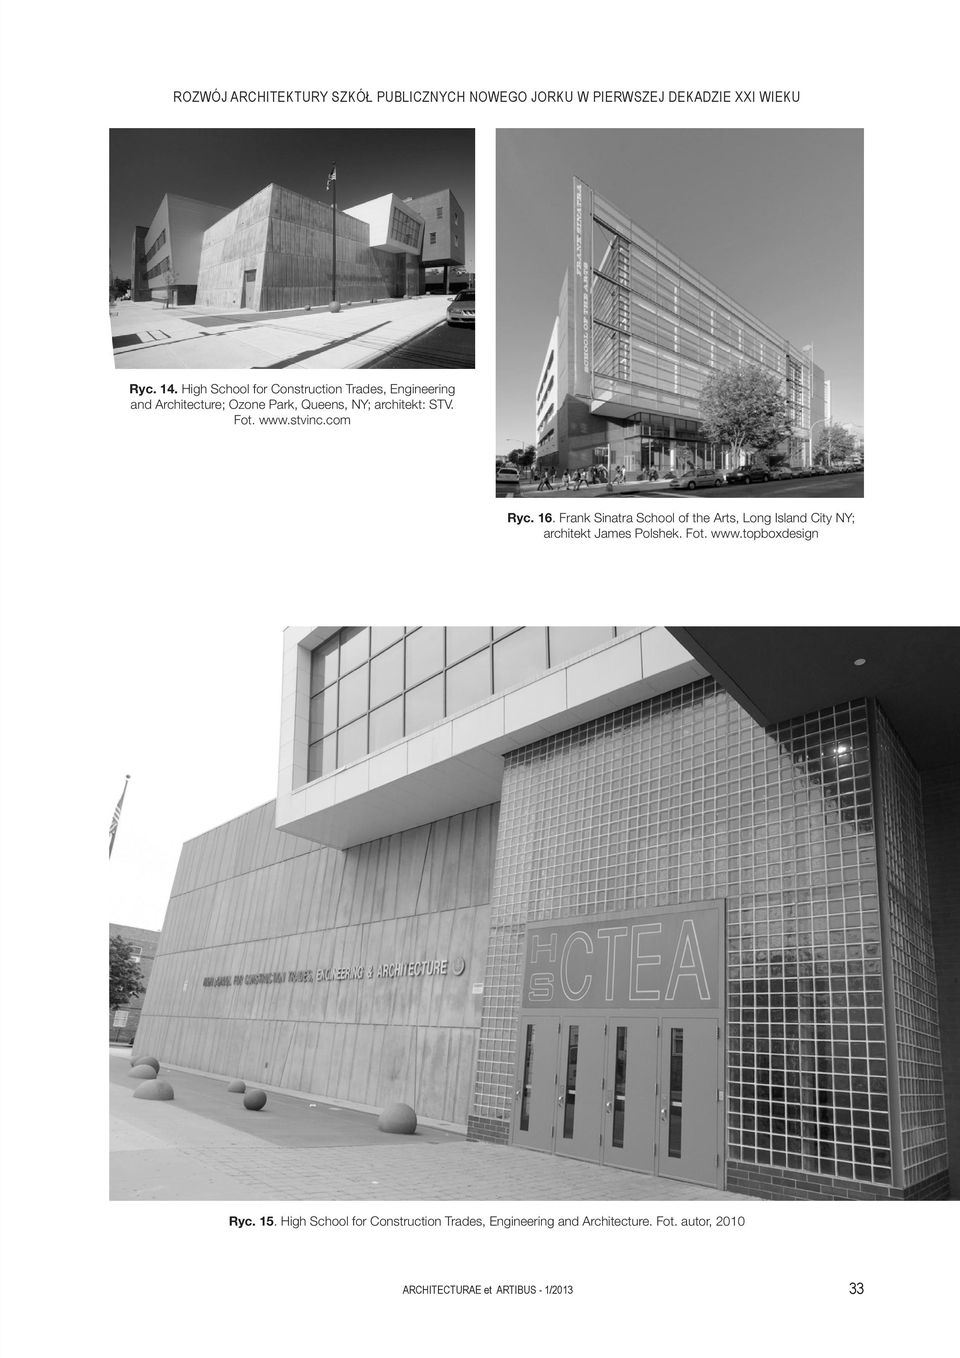 www.stvinc.com Ryc. 16. Frank Sinatra School of the Arts, Long Island City NY; architekt James Polshek. Fot. www.